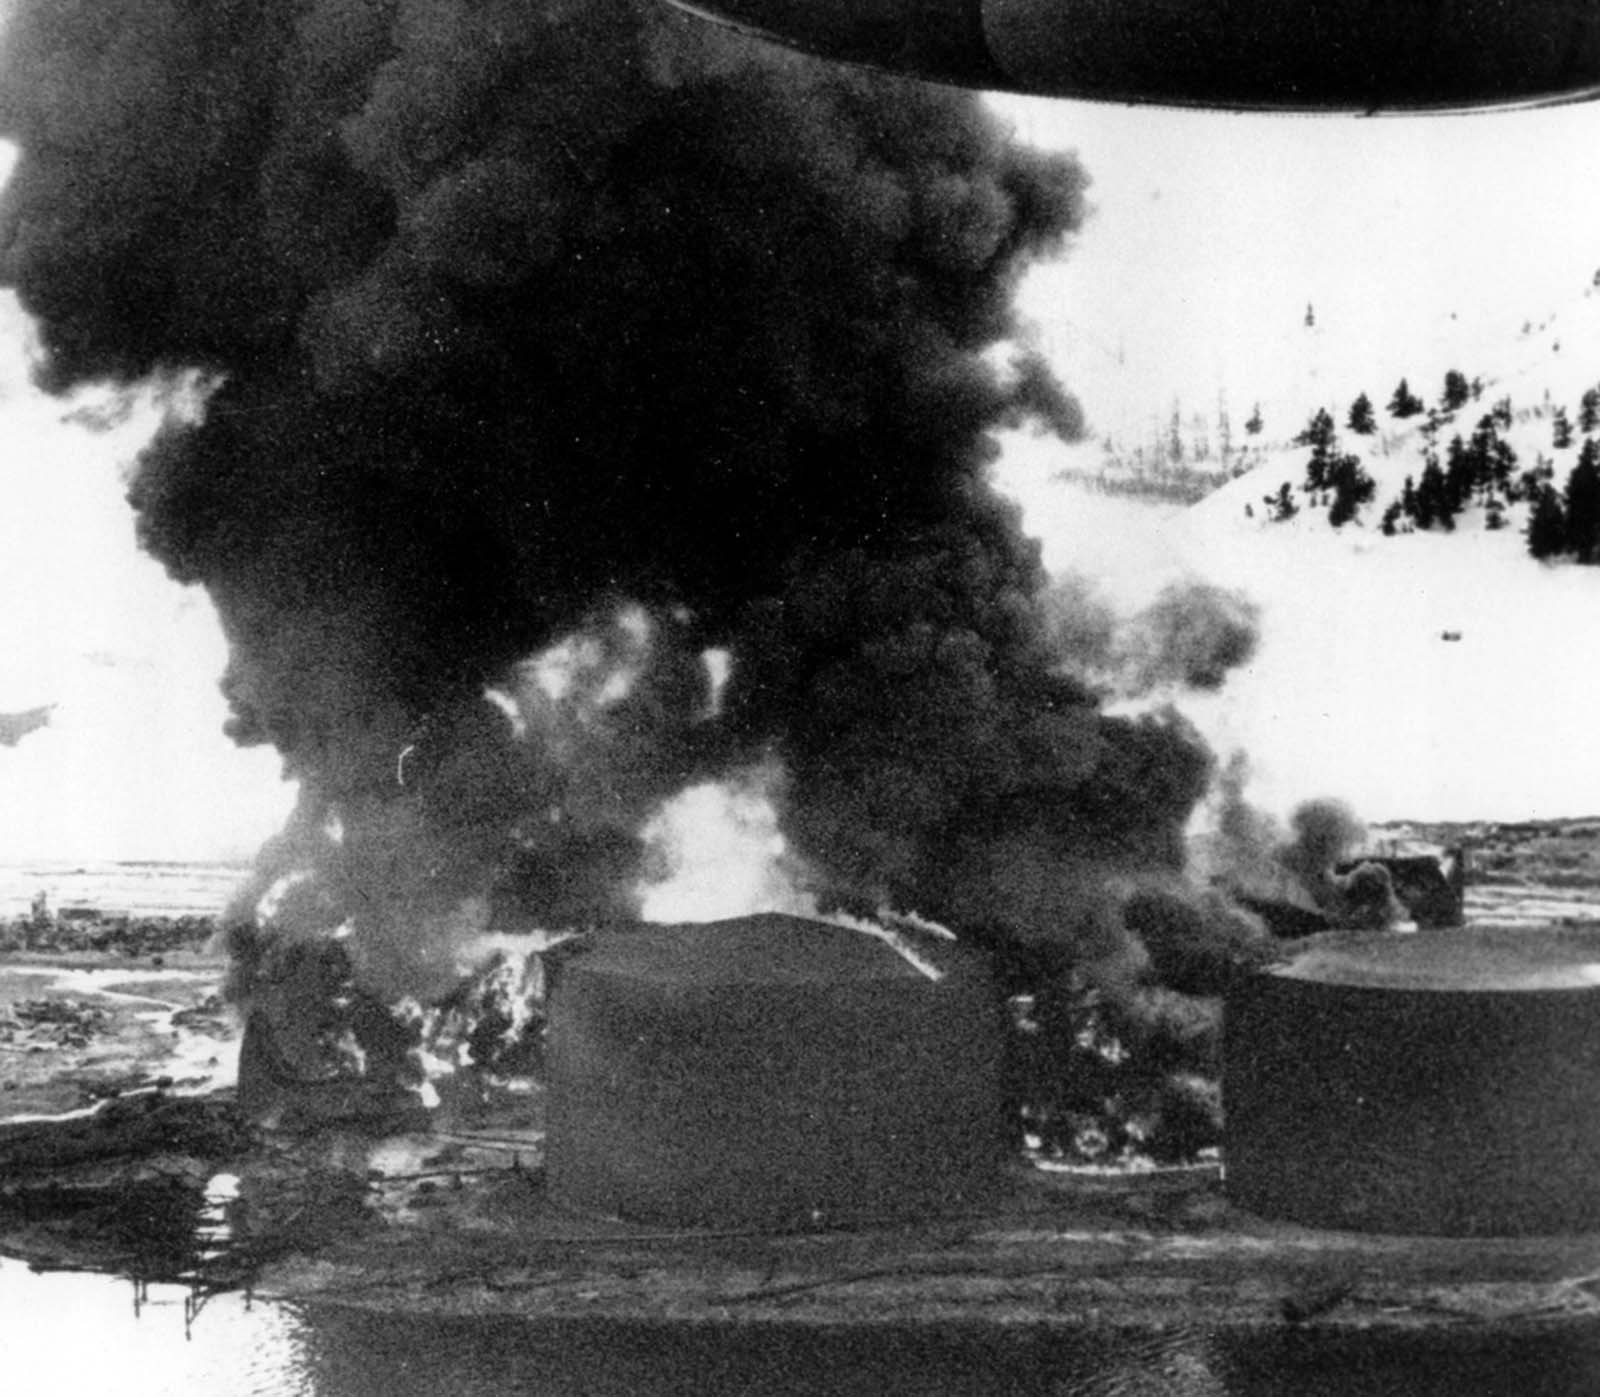 Smoke rises high into the Alaska sky from burning oil tanks in Whittier, on March 30, 1964.